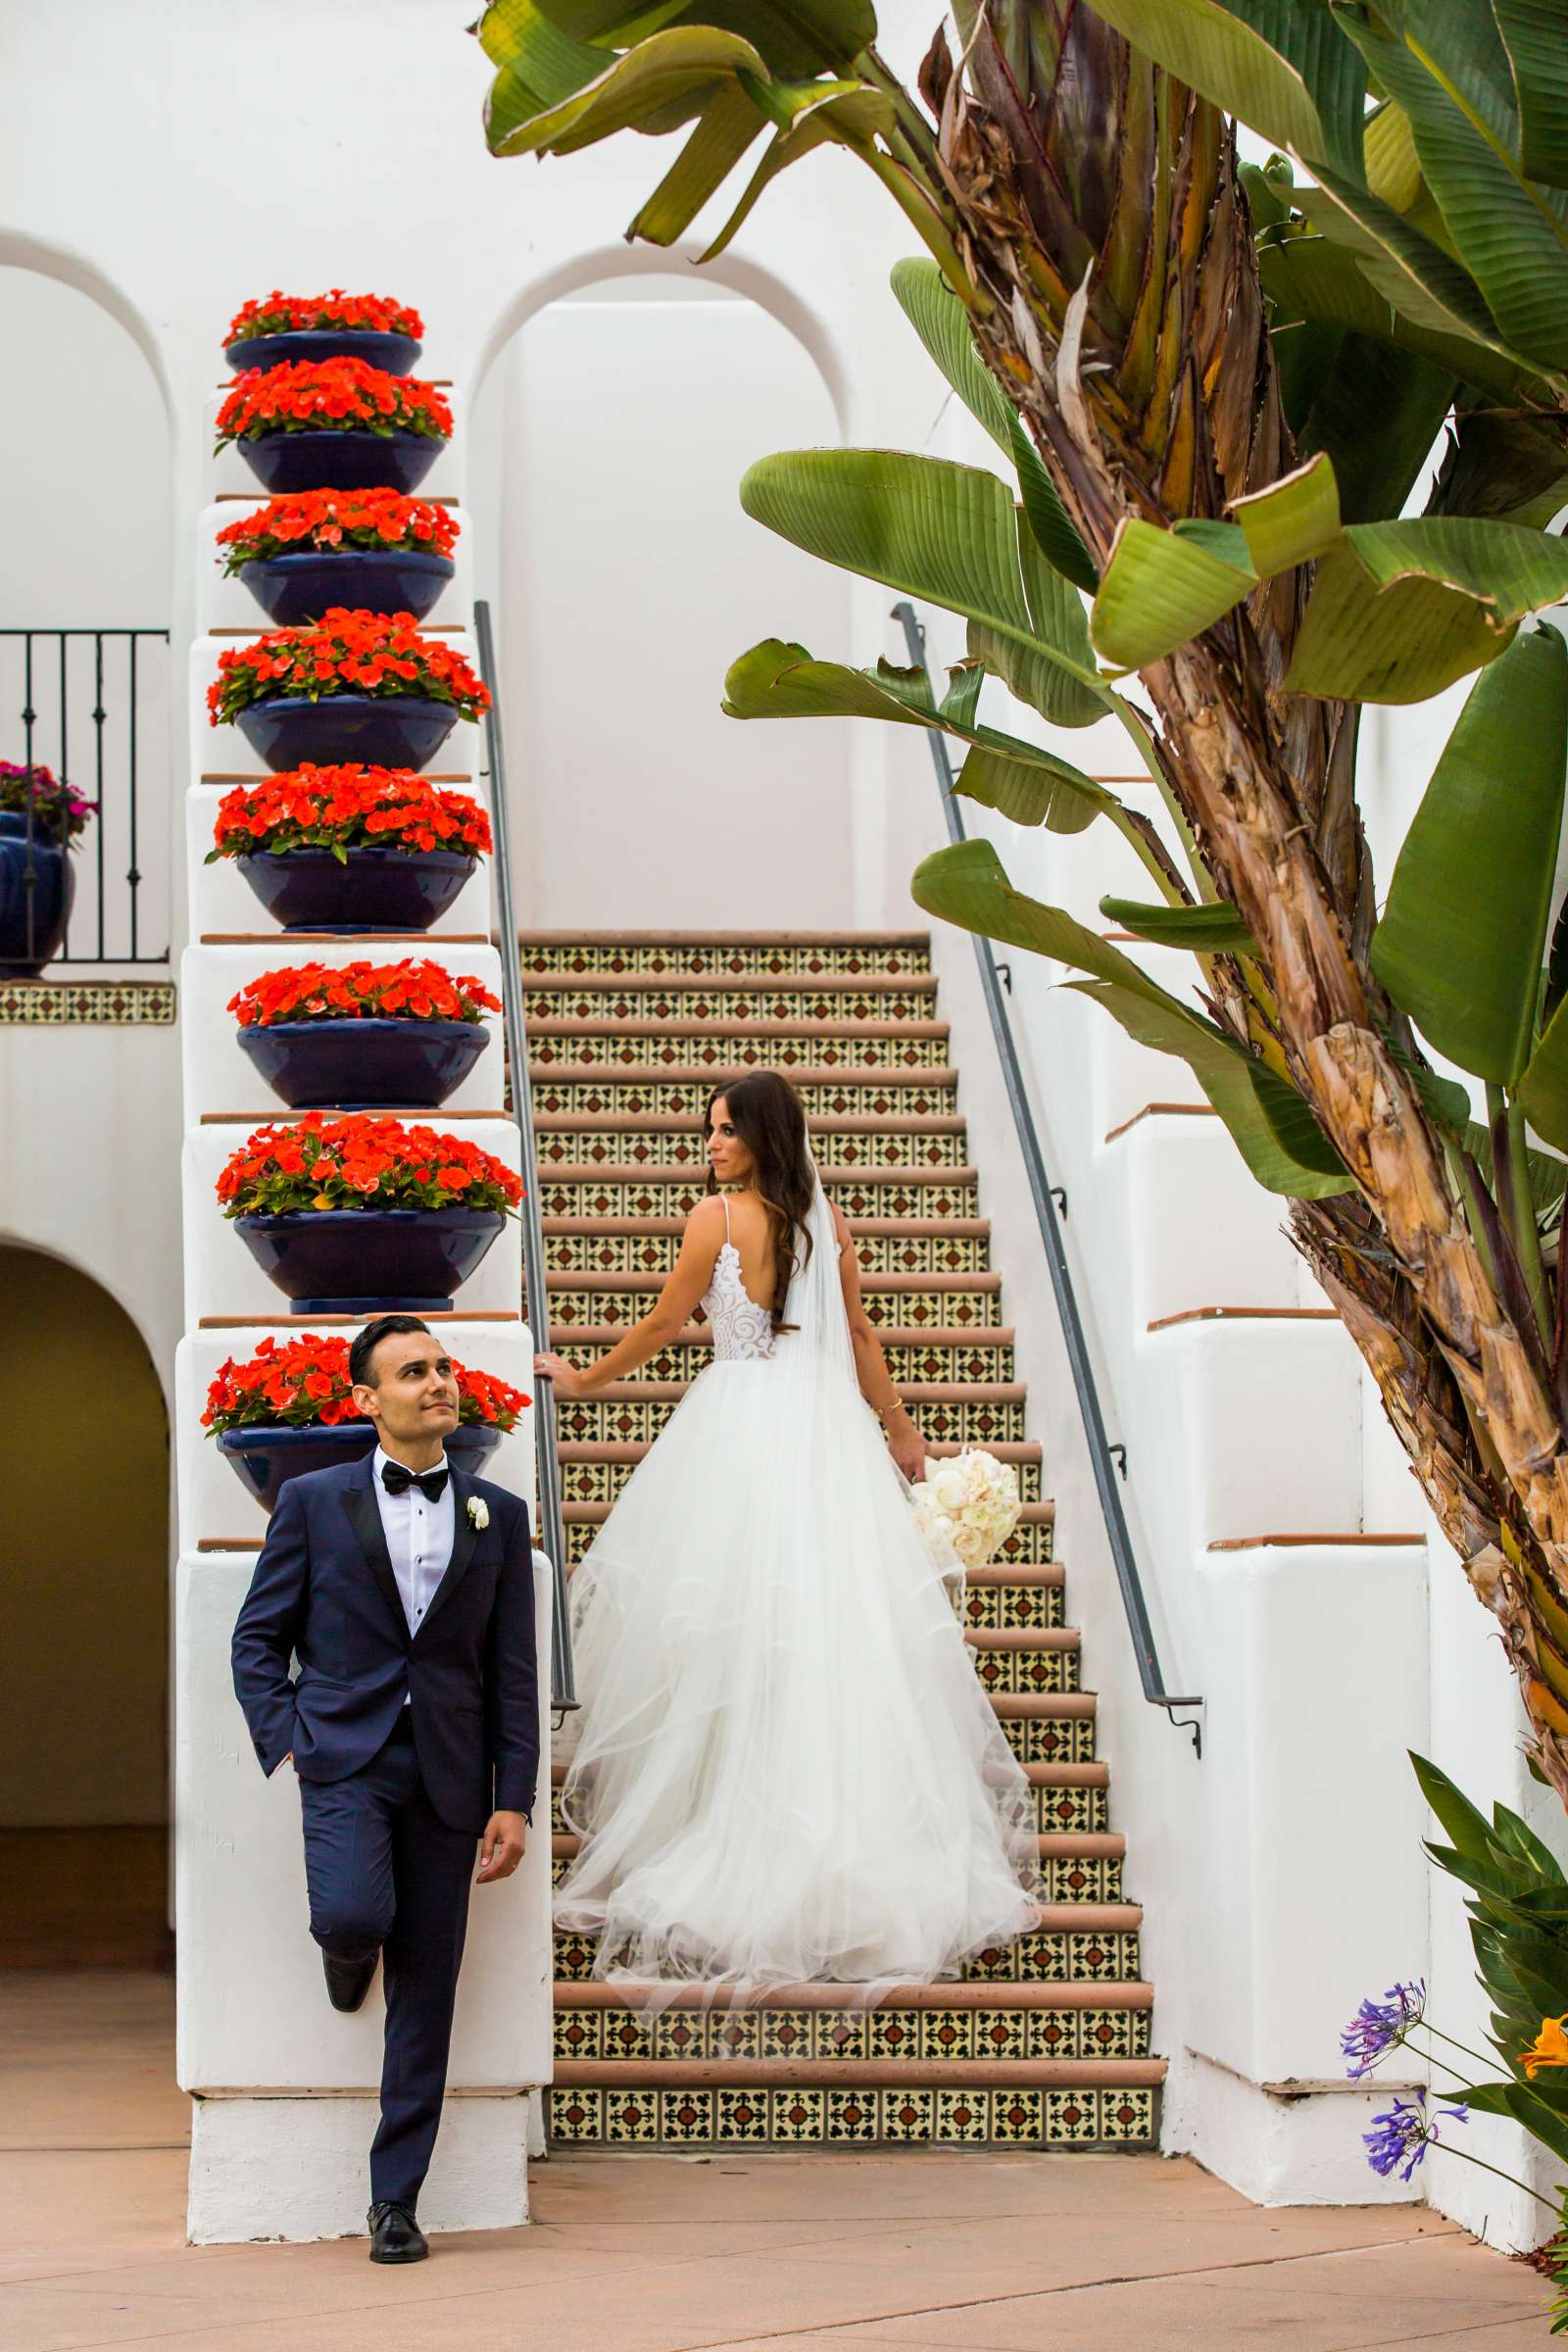 Omni La Costa Resort & Spa Wedding coordinated by Fabulous Two Design, Kristyn and Mani Wedding Photo #3 by True Photography